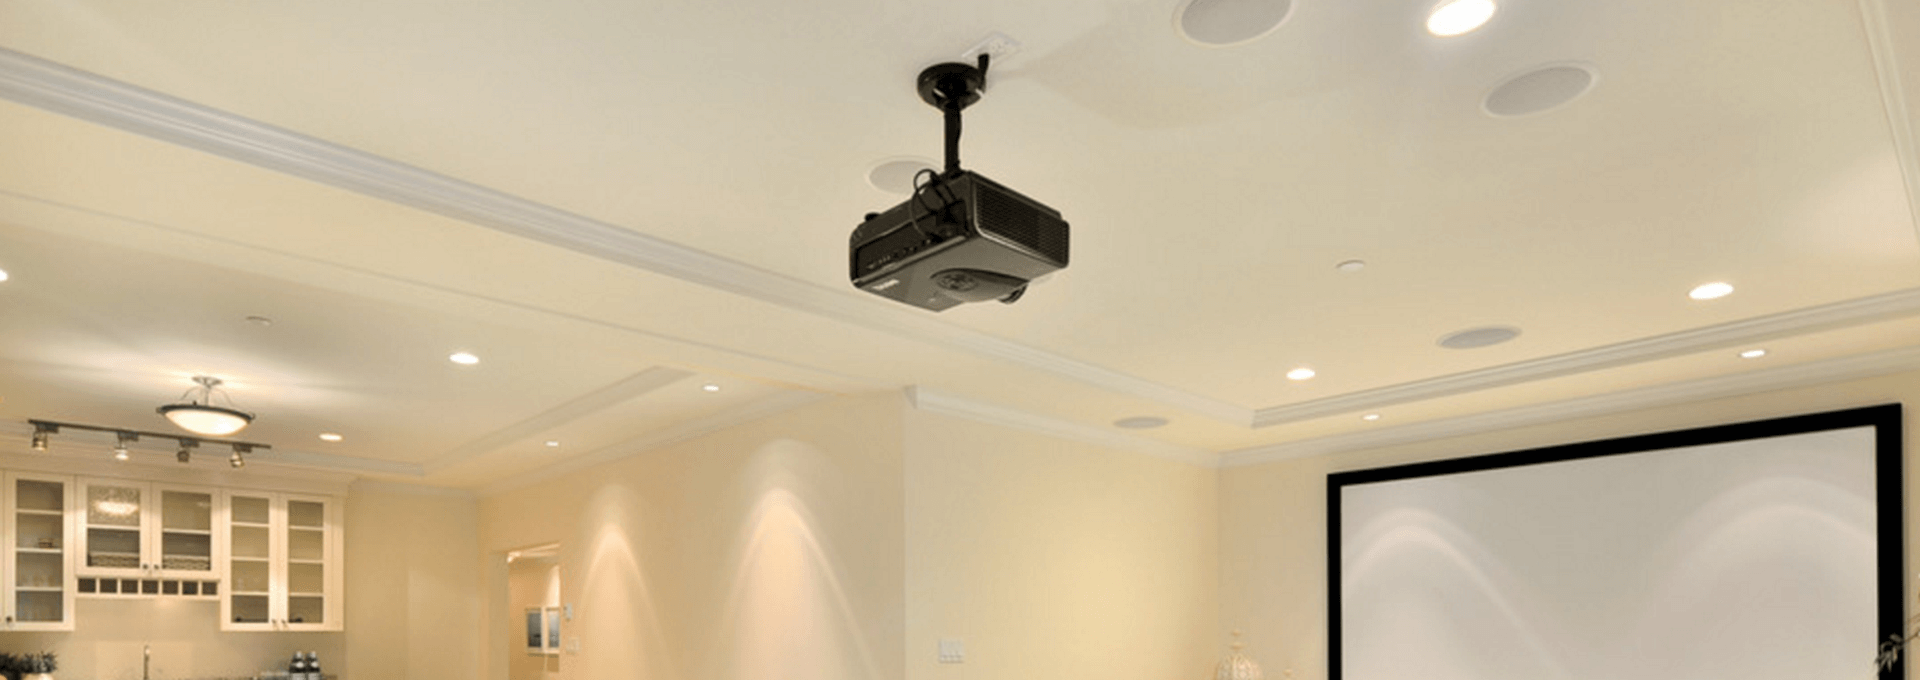 Circular Projector Ceiling Mount